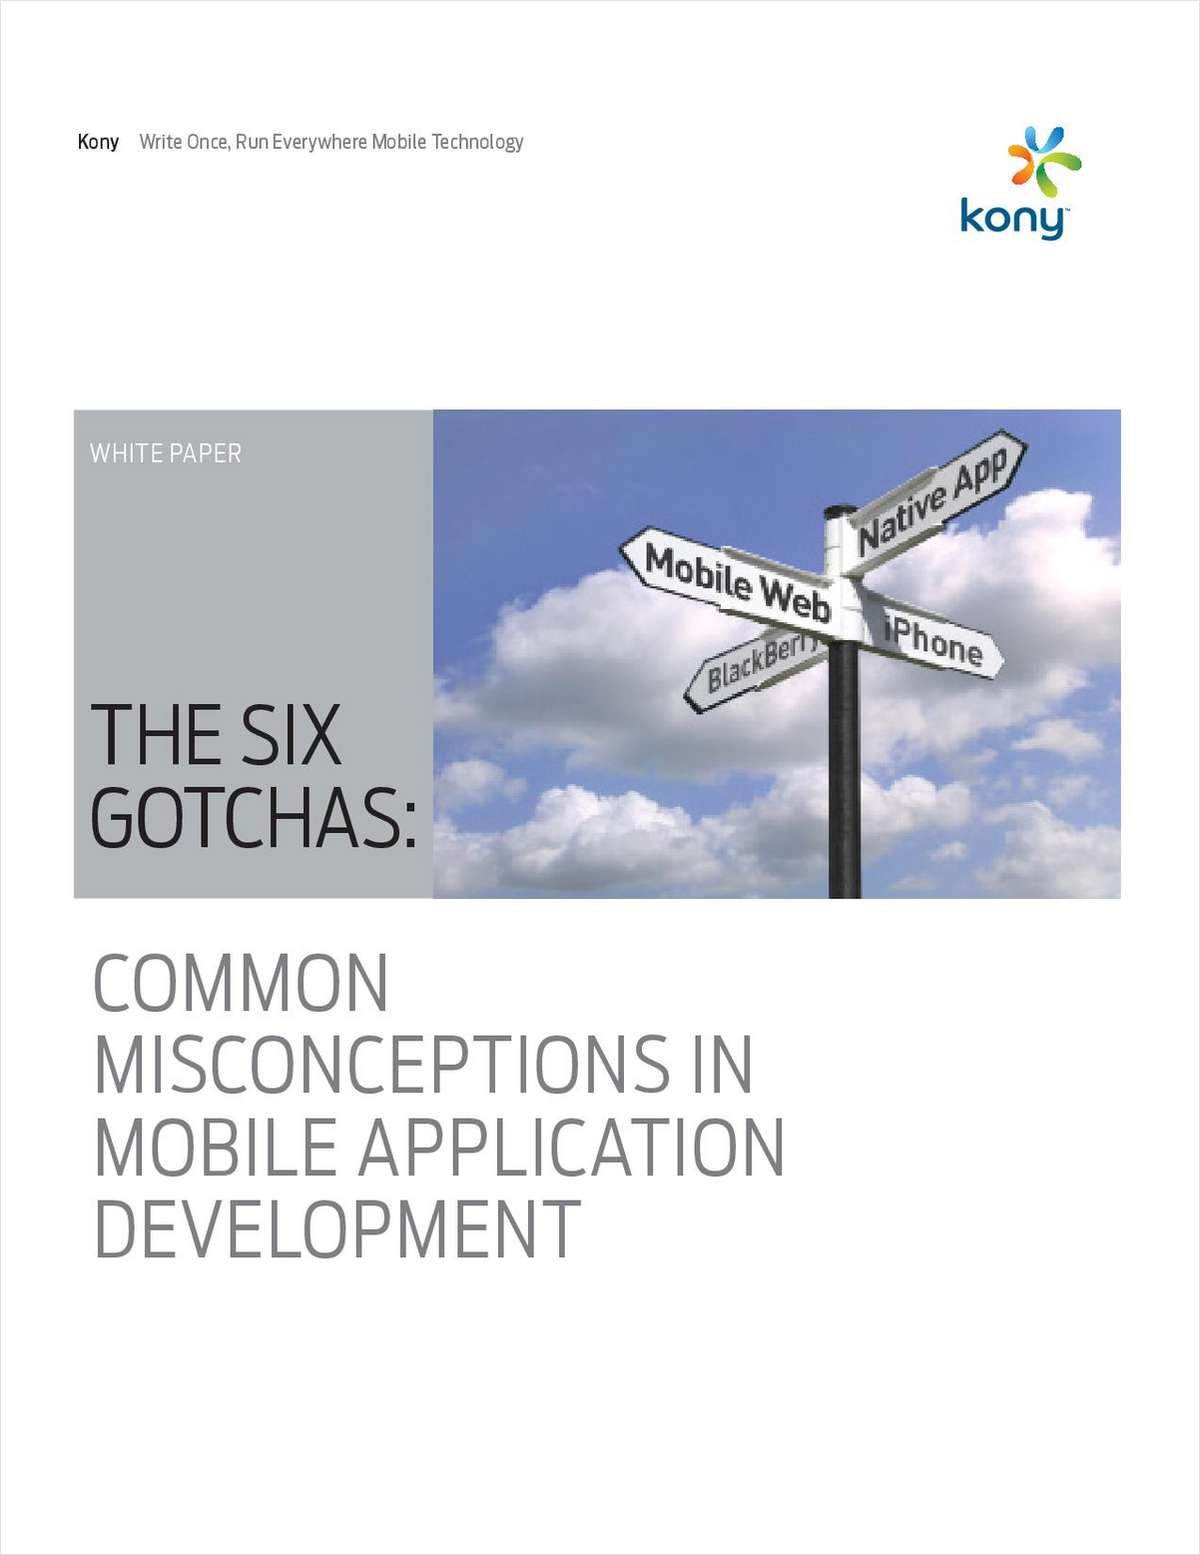 The Six Gotchas: Common Misconceptions in Mobile App Development